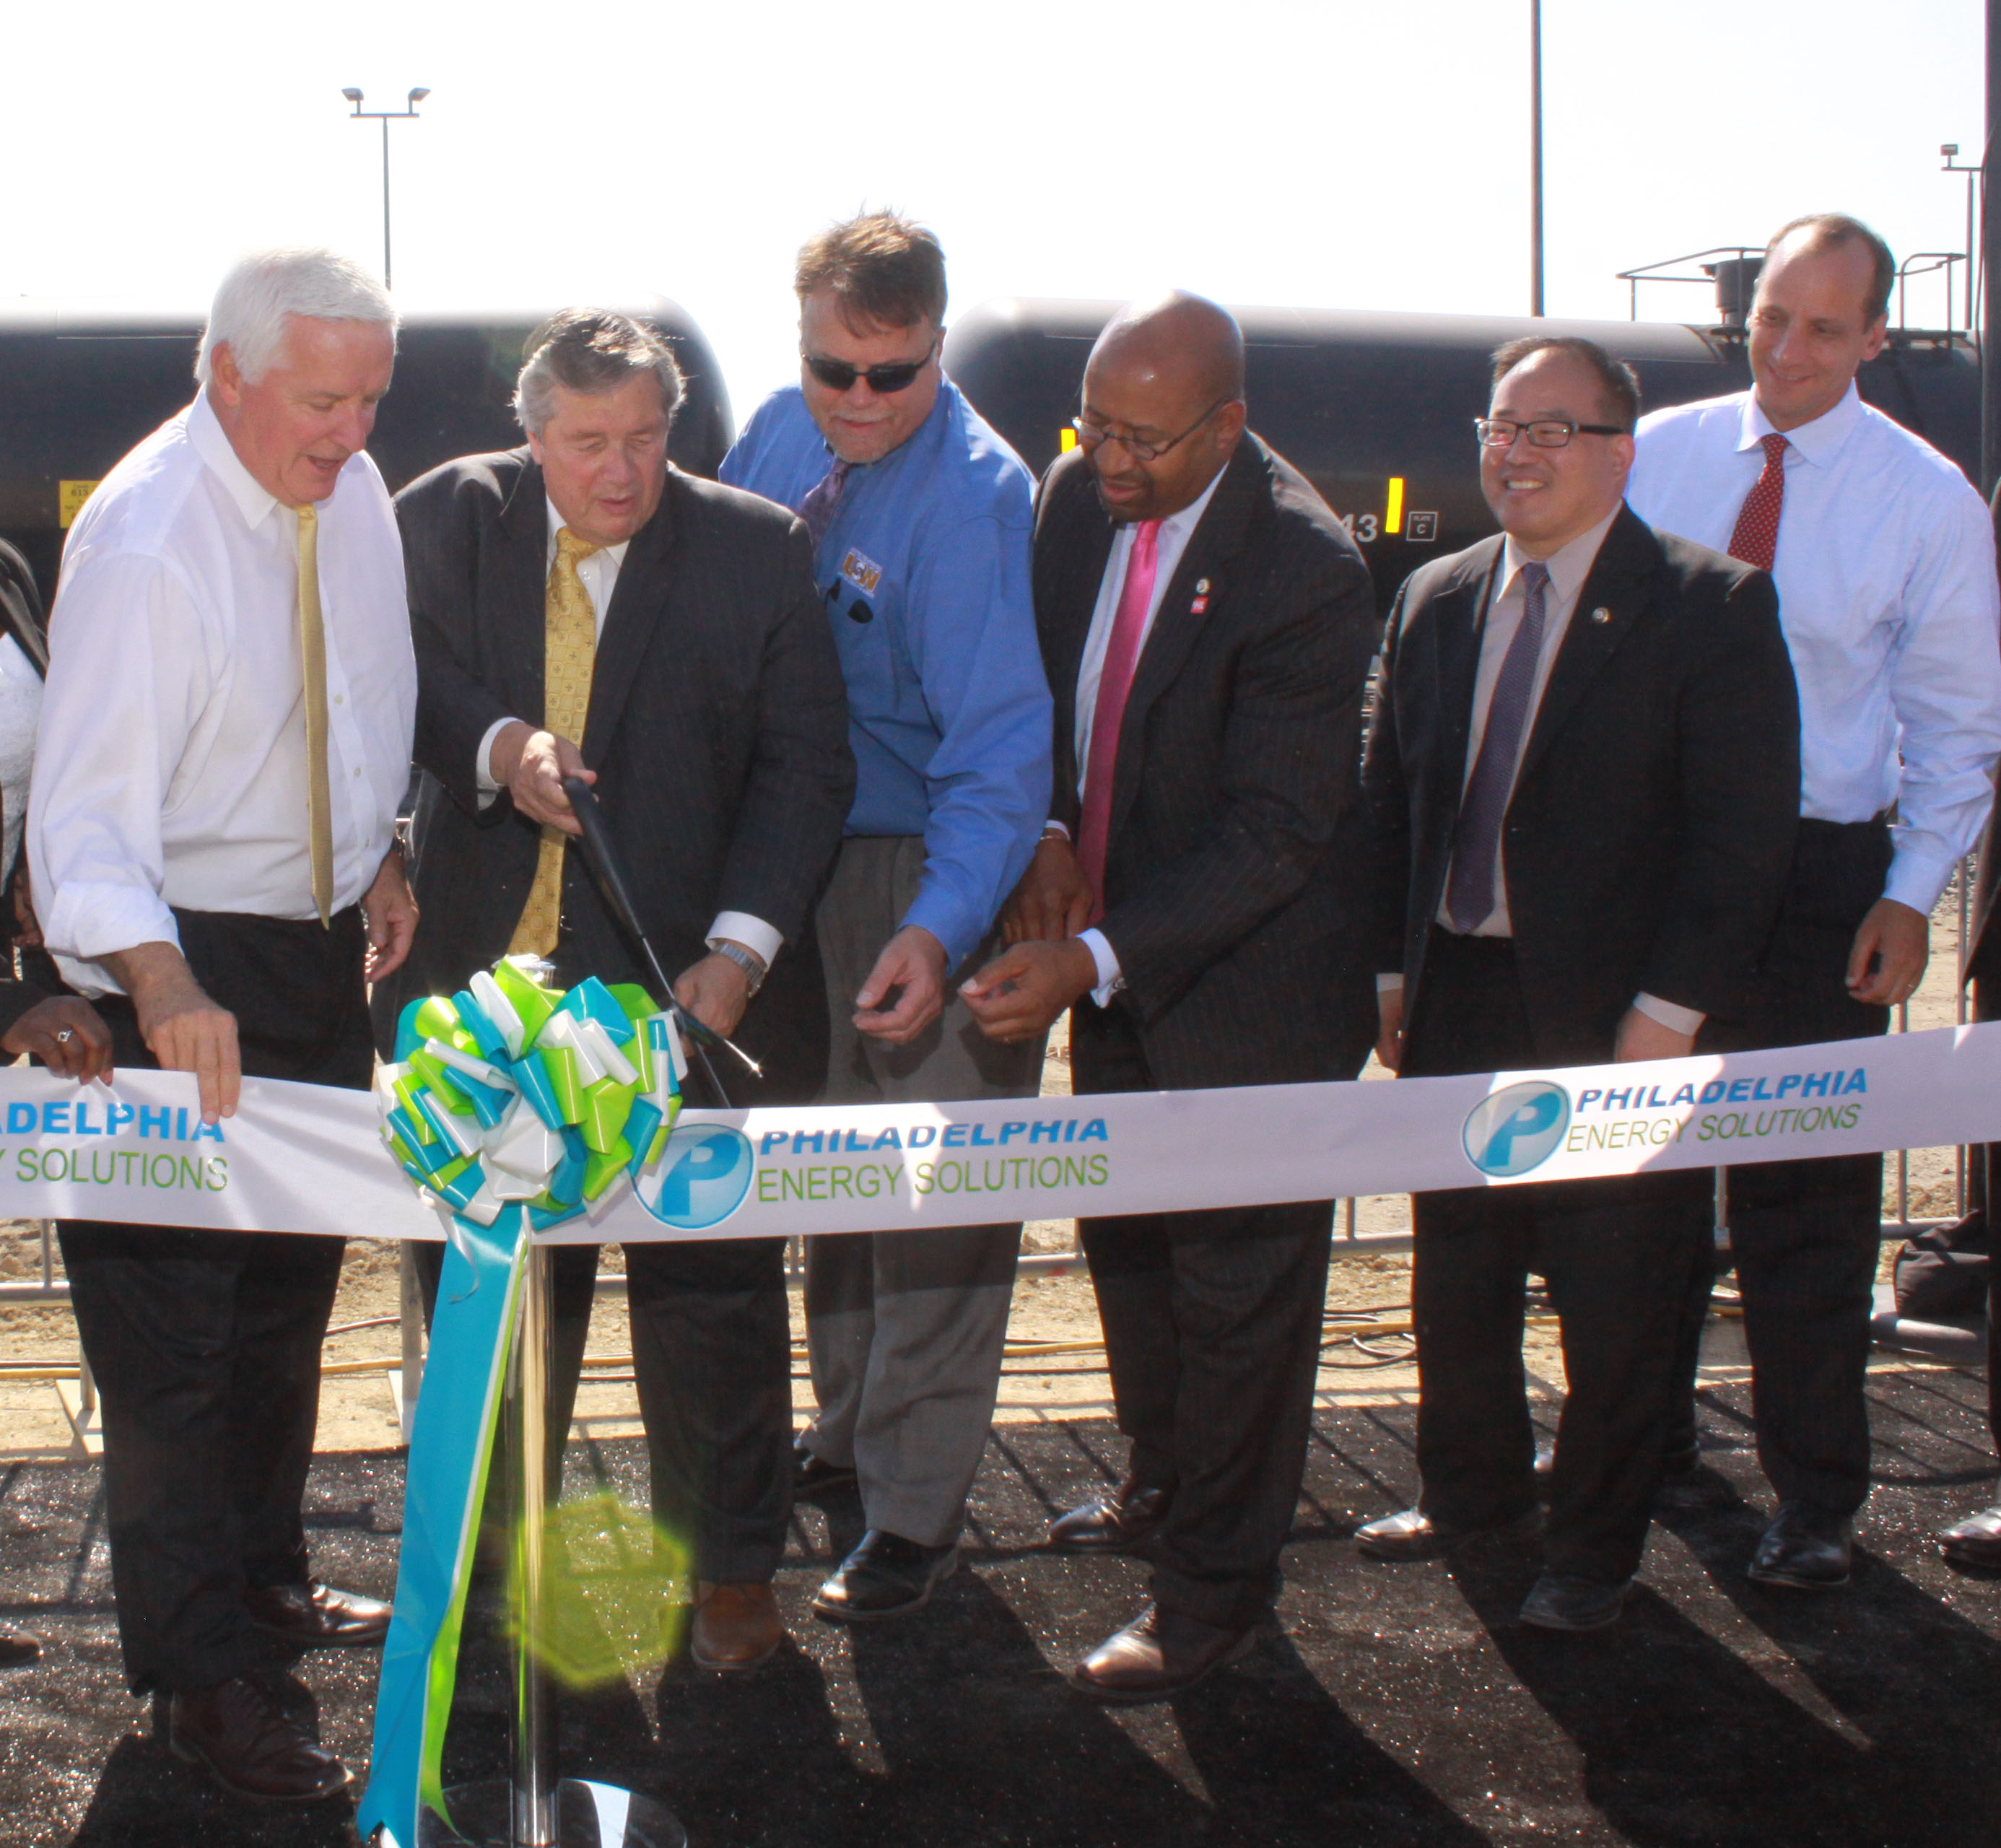 Labor, management and elected officials joined to relaunch the South Philadelphia refinery under new ownership.